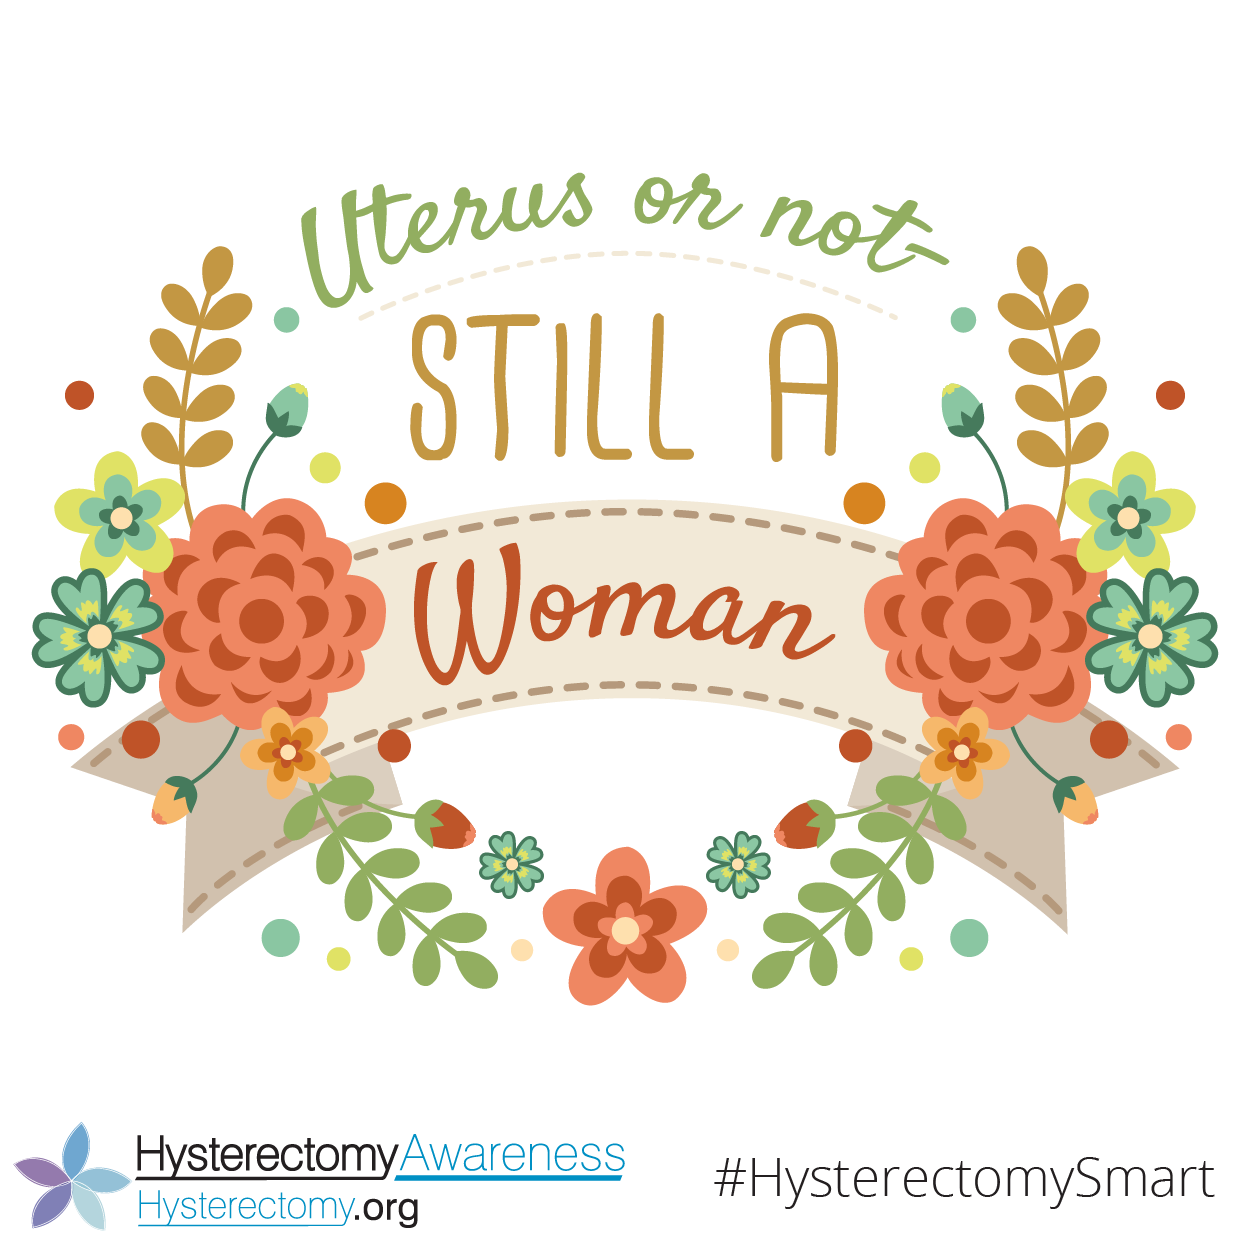 Uterus or not – Still a Woman #HysterectomySmart